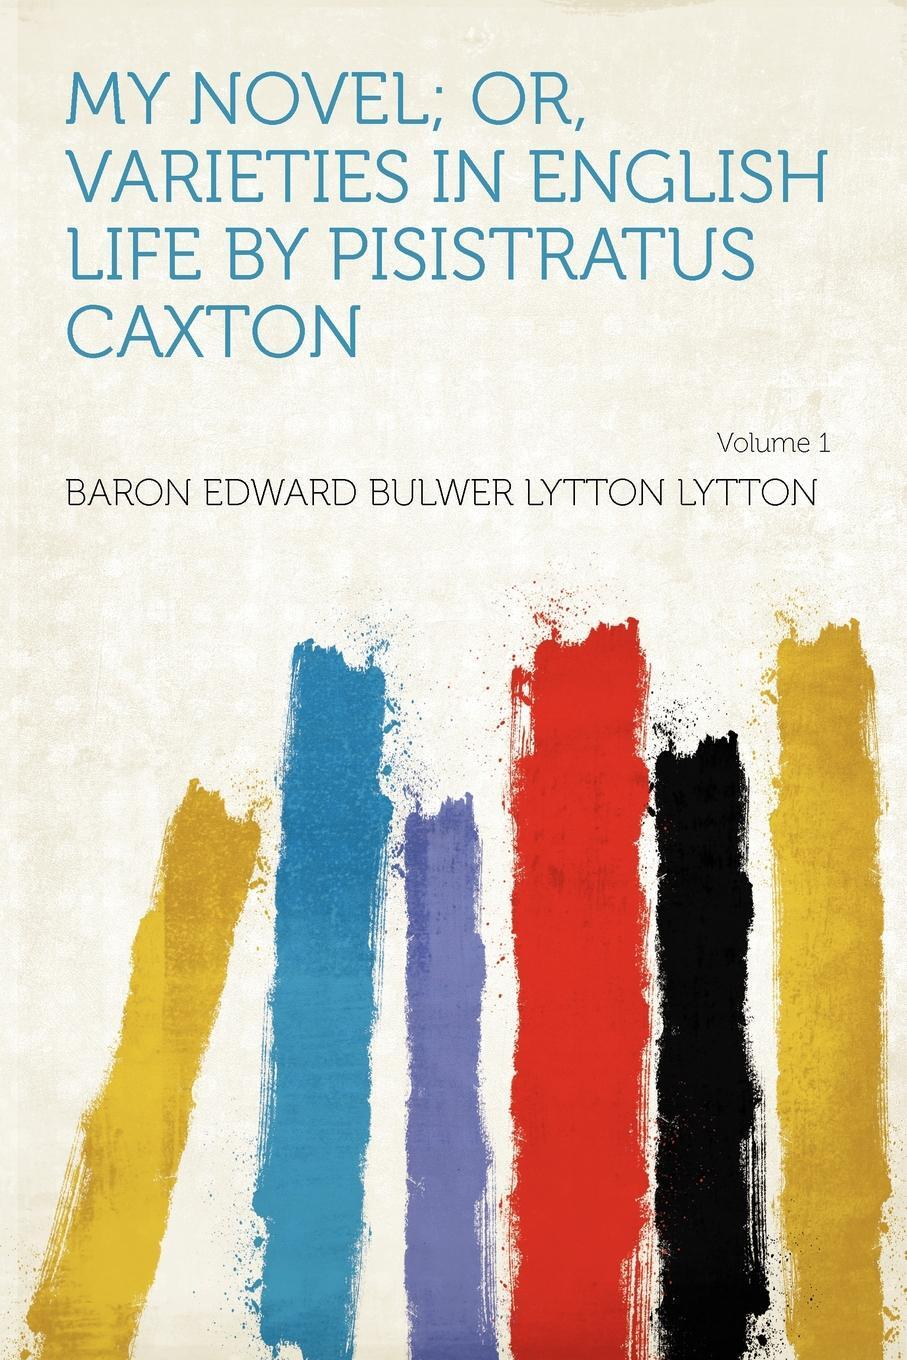 My Novel; Or, Varieties in English Life by Pisistratus Caxton Volume 1